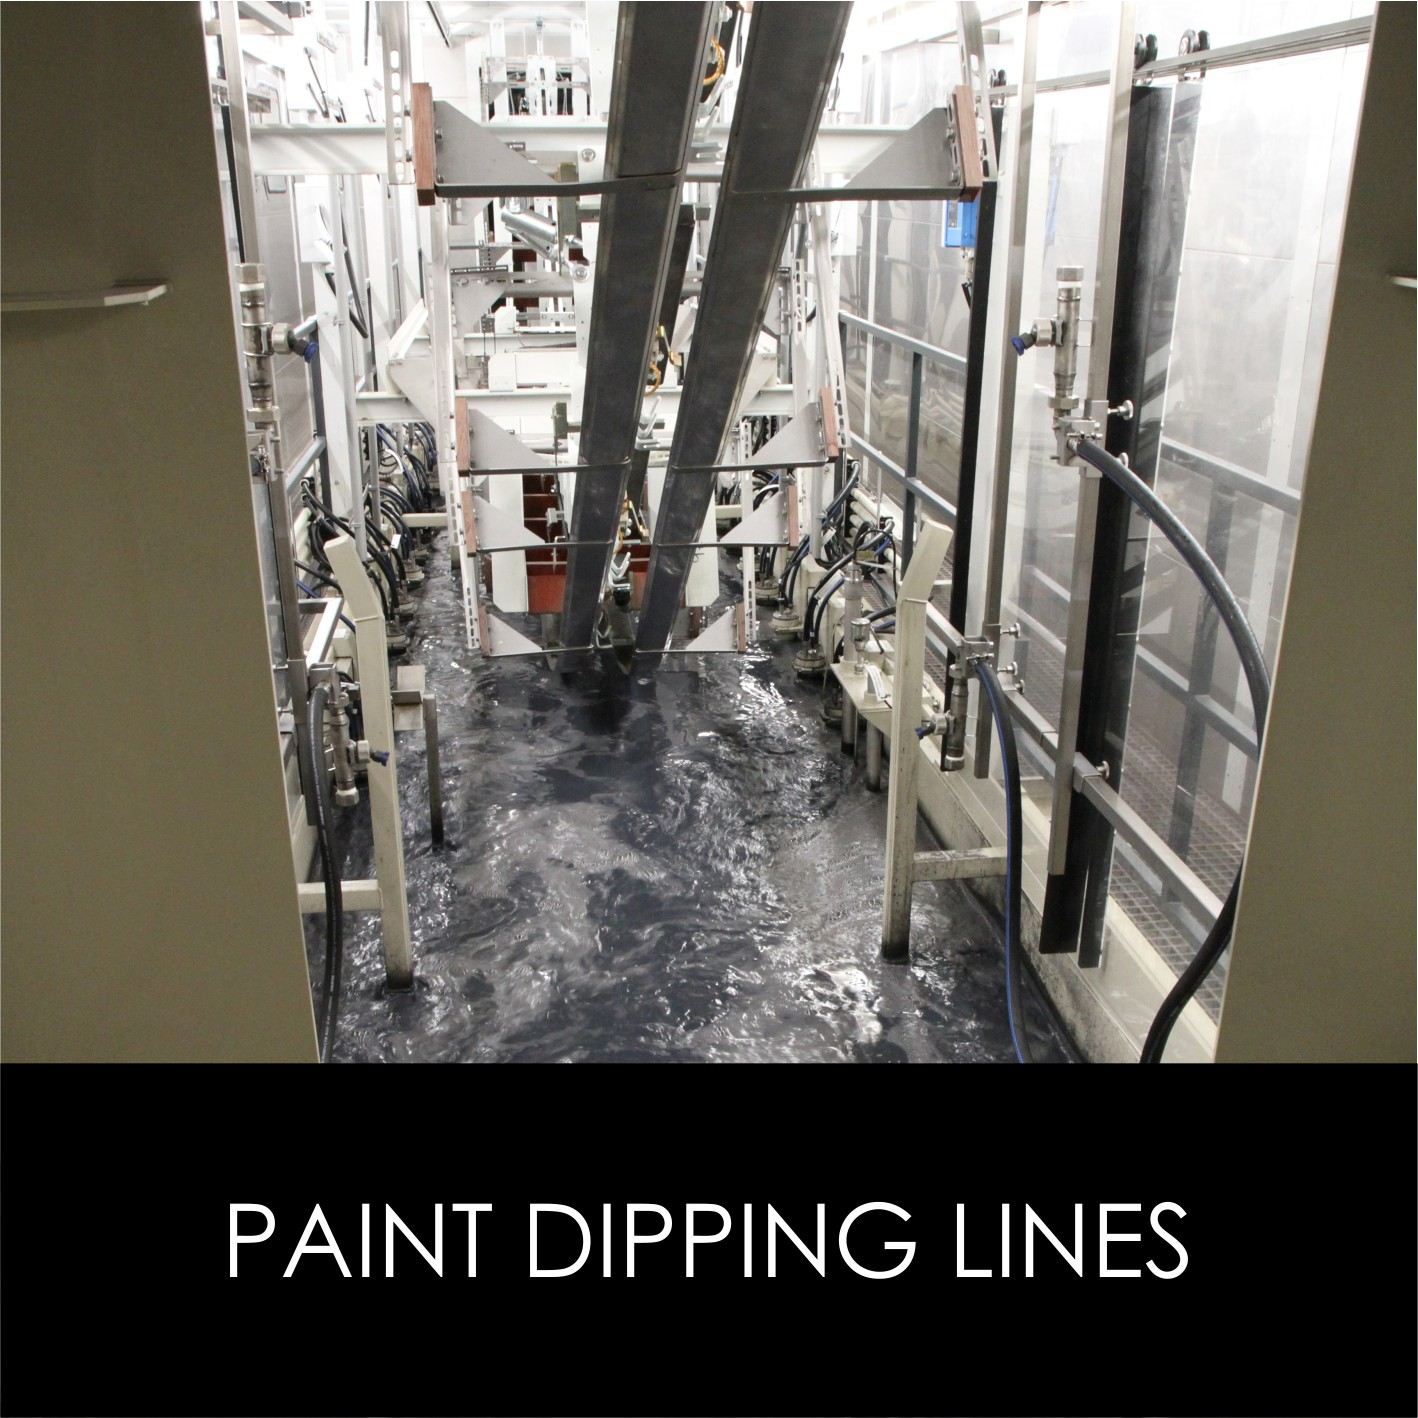 Paint dipping lines